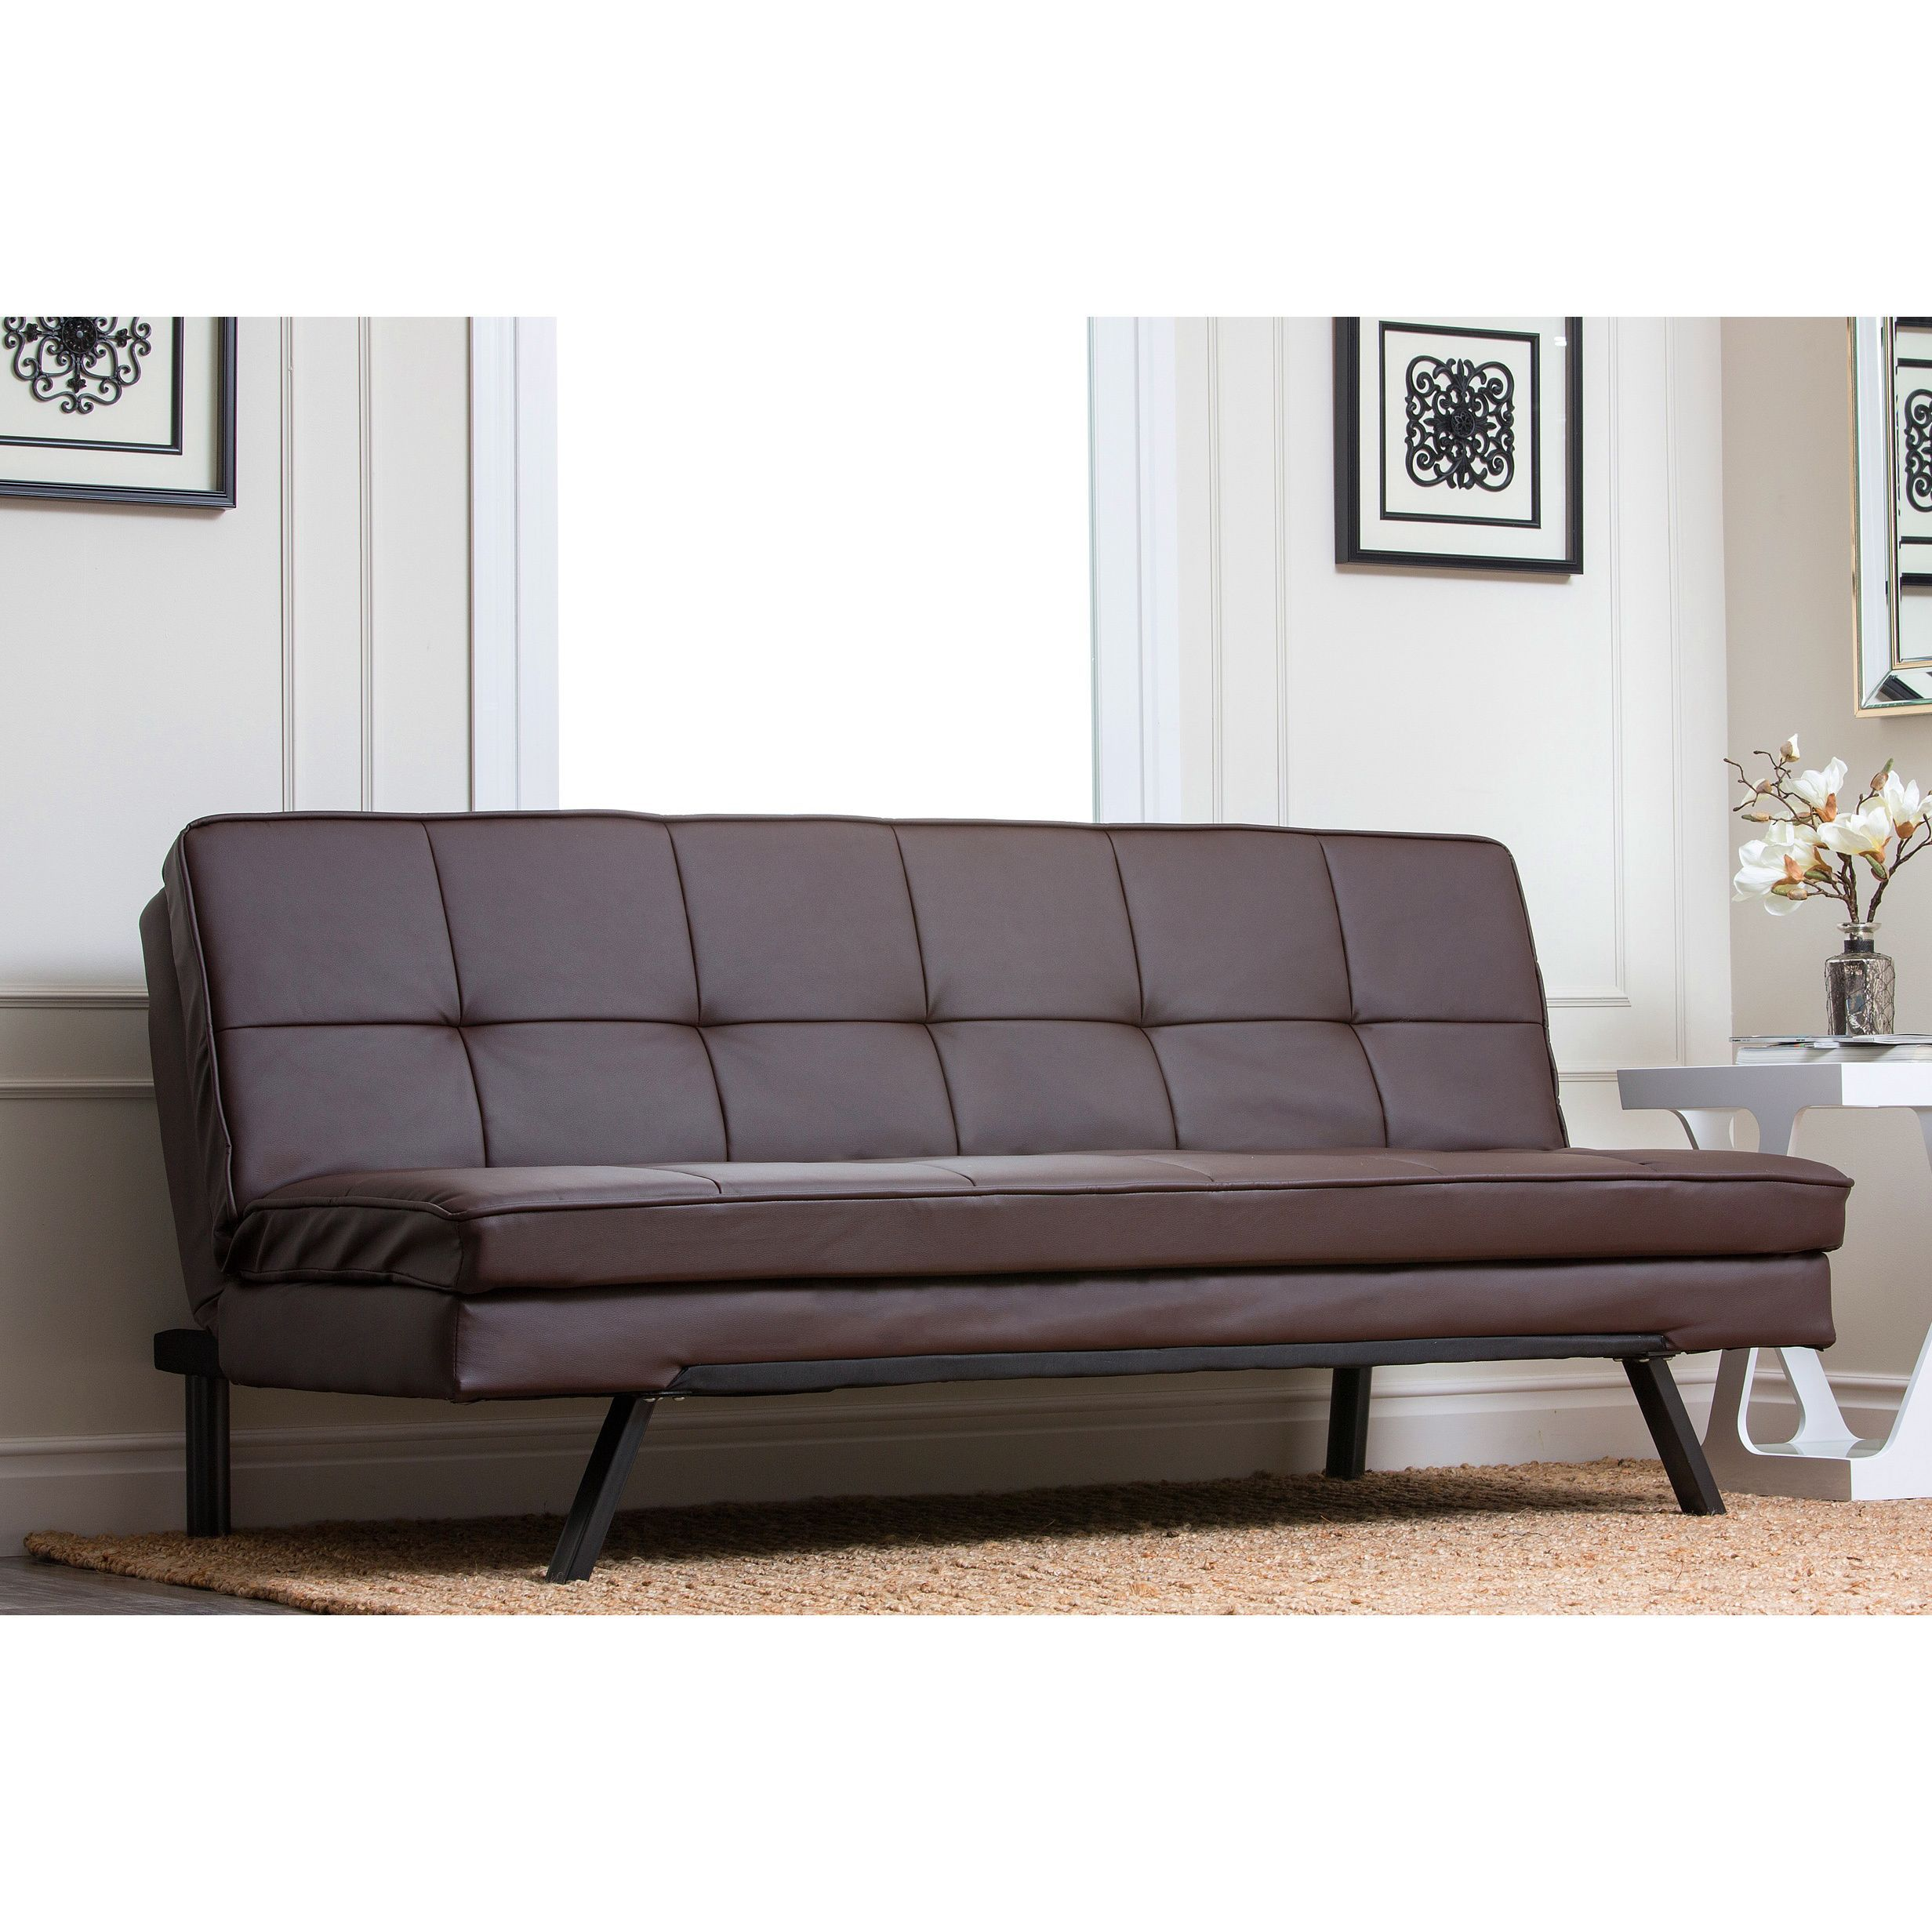 abbyson newport faux leather futon sleeper sofa futon mattress